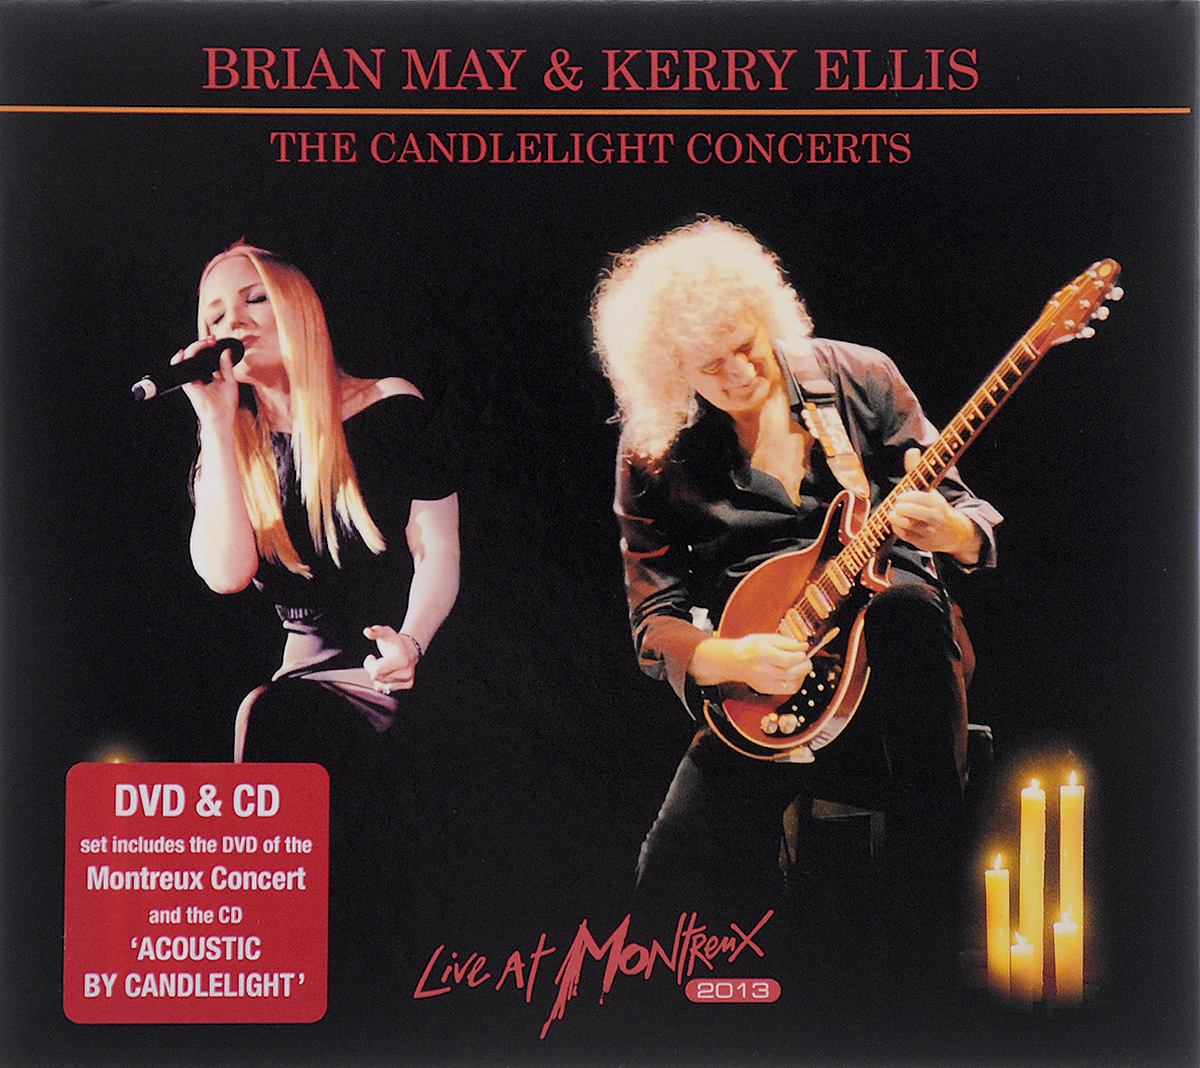 Брайан Мэй,Керри Эллис Brian May, Kerry Ellis. The Candlelight Concerts. Live At Montreux 2013 (CD + DVD) моуз эллисон mose allison transfiguration of hiram brown creek bank i love the life i live v 8 ford blues young man mose 2 cd